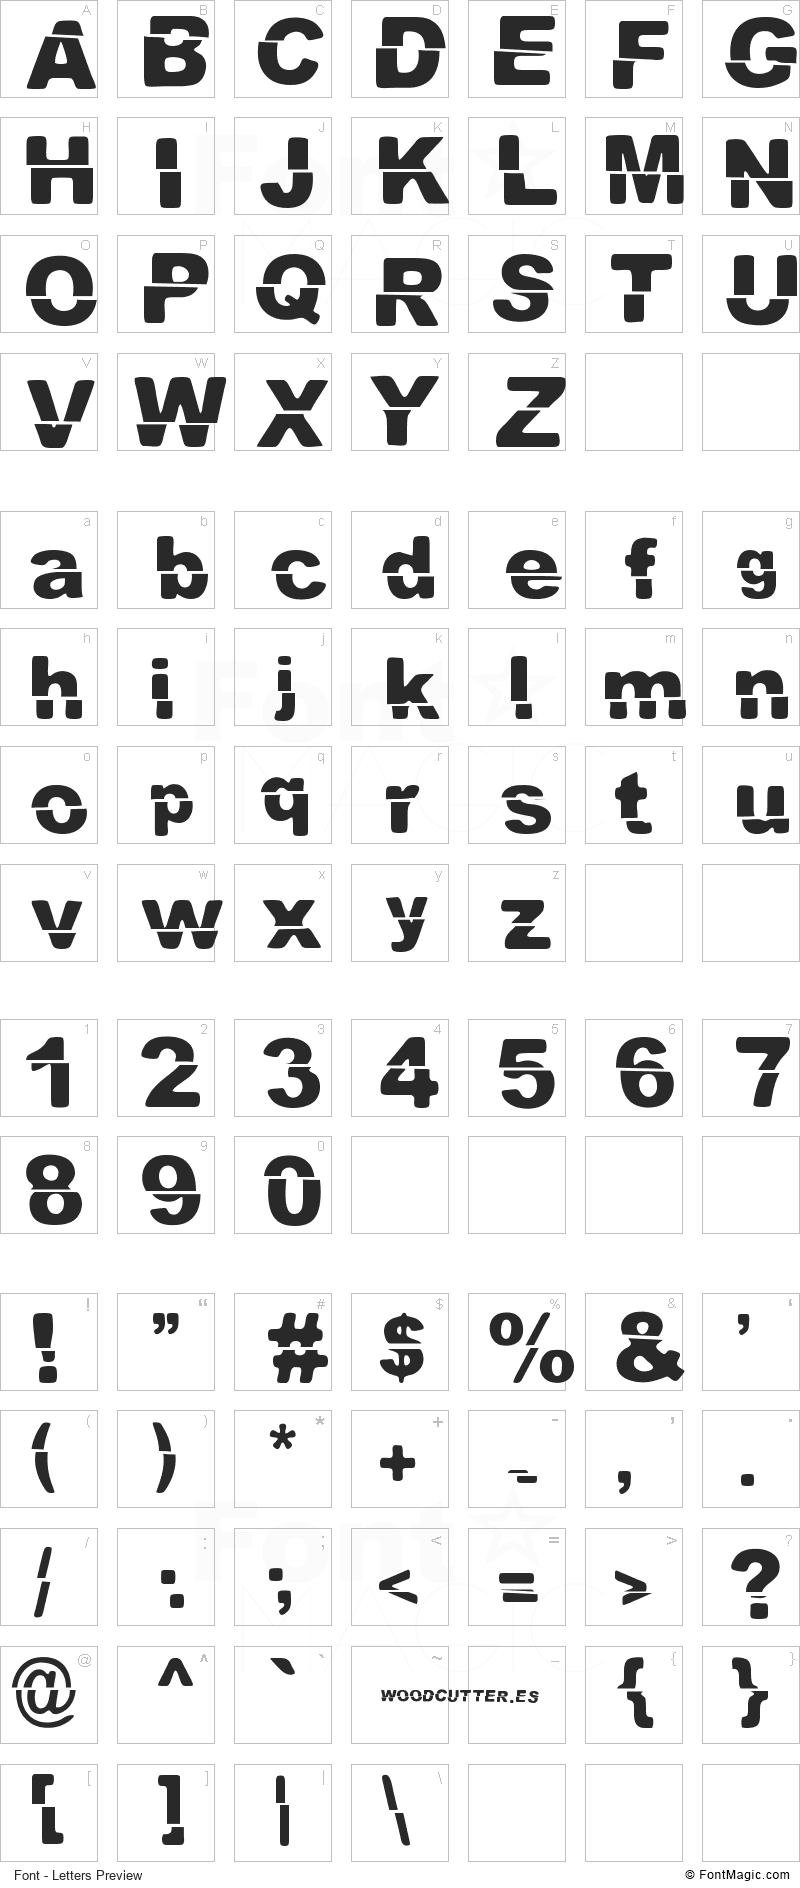 El Extraño Font - All Latters Preview Chart